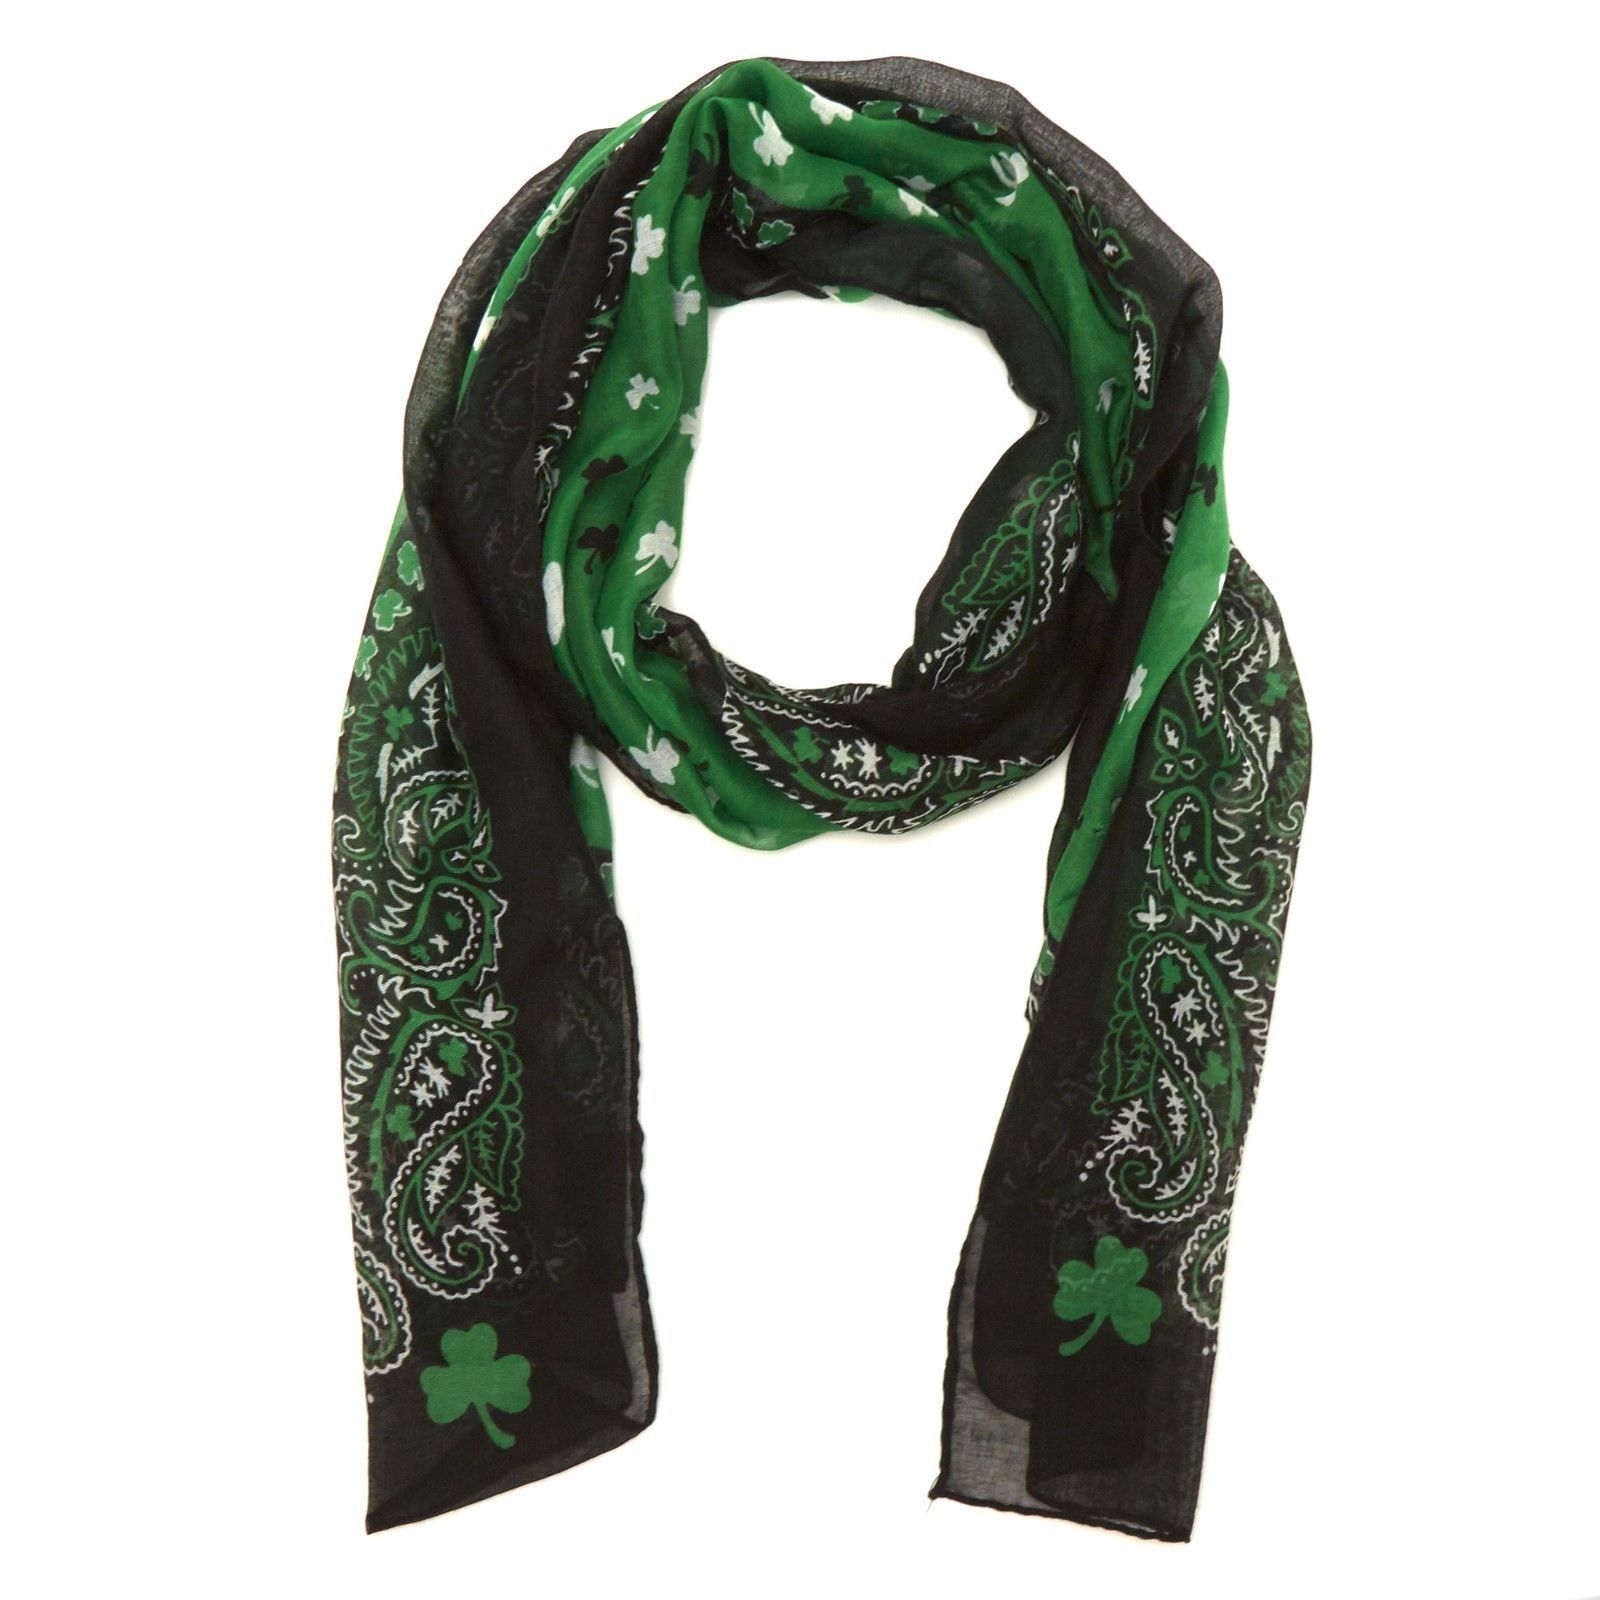 Primary image for St. Patrick's Day Shamrock Scarf Green Black White Paisley Design NWT